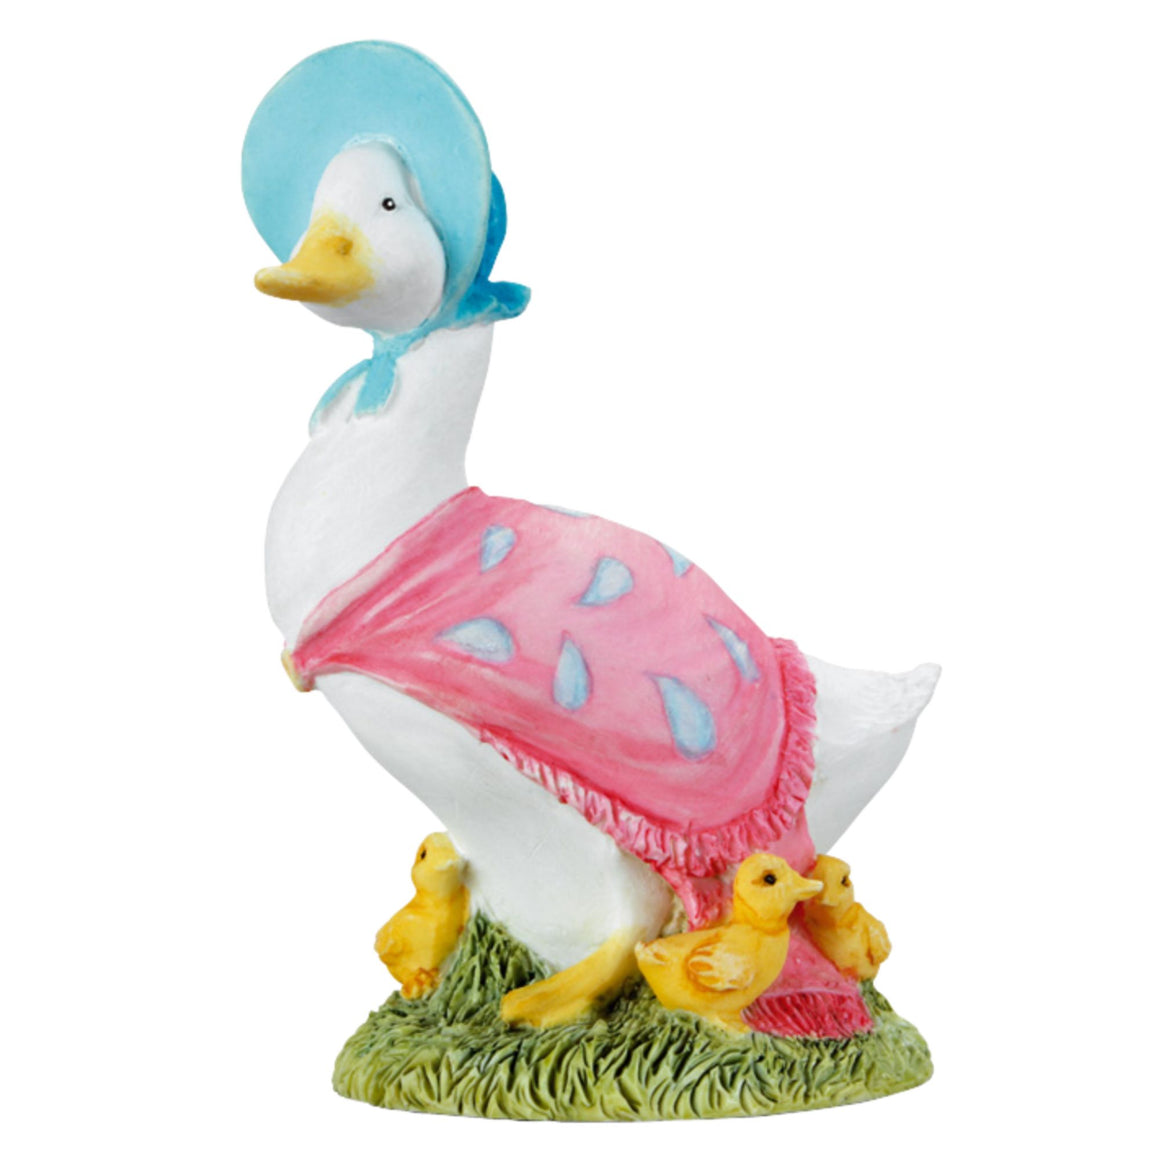 Beatrix Potter Jemima Puddle-Duck with Ducklings Figurine